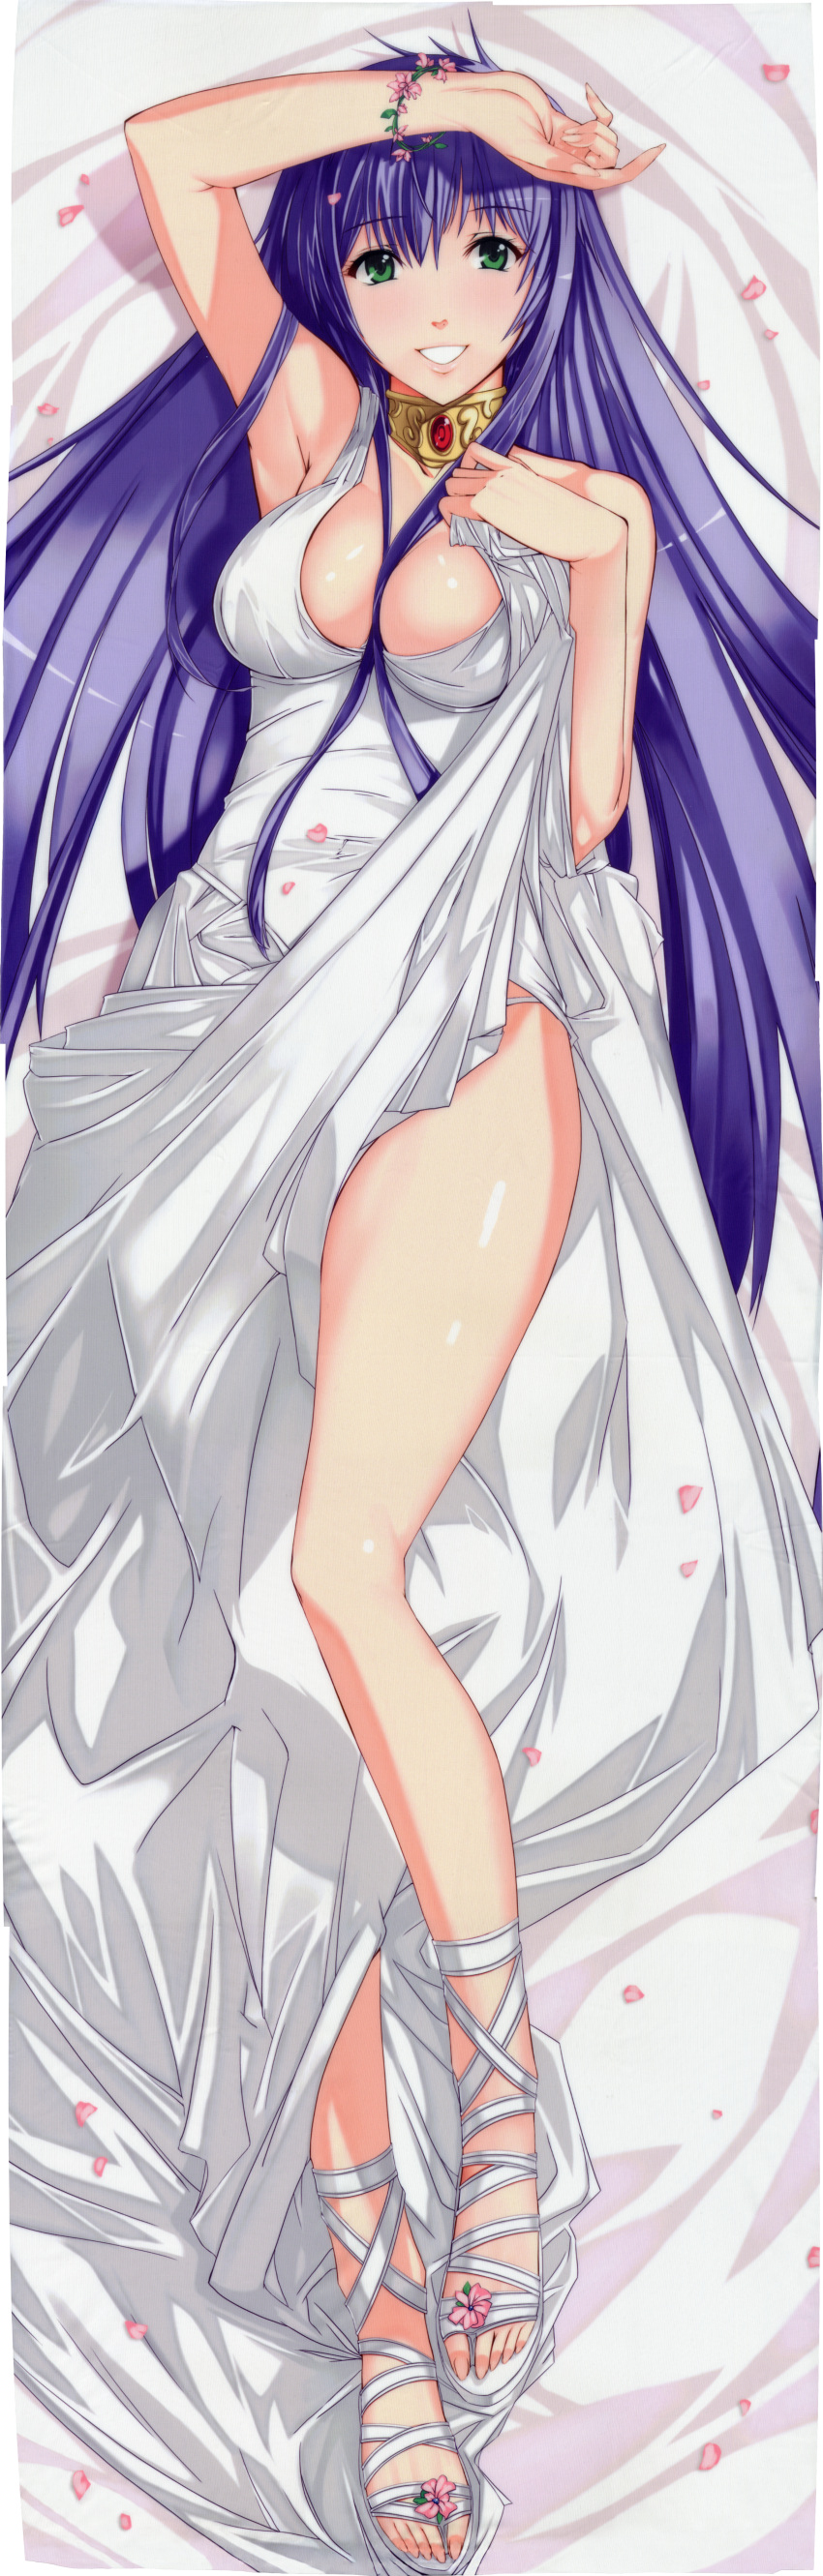 1girl absurdres bed_sheet breasts cherry_blossoms cleavage dakimakura dress dress_lift eyebrows eyebrows_visible_through_hair from_above green_eyes grin highres huge_filesize ky large_breasts long_hair looking_at_viewer lying on_back panties panty_peek purple_hair saint_seiya:_the_lost_canvas sasha_(saint_seiya:_the_lost_canvas) smile solo underwear white_dress white_panties